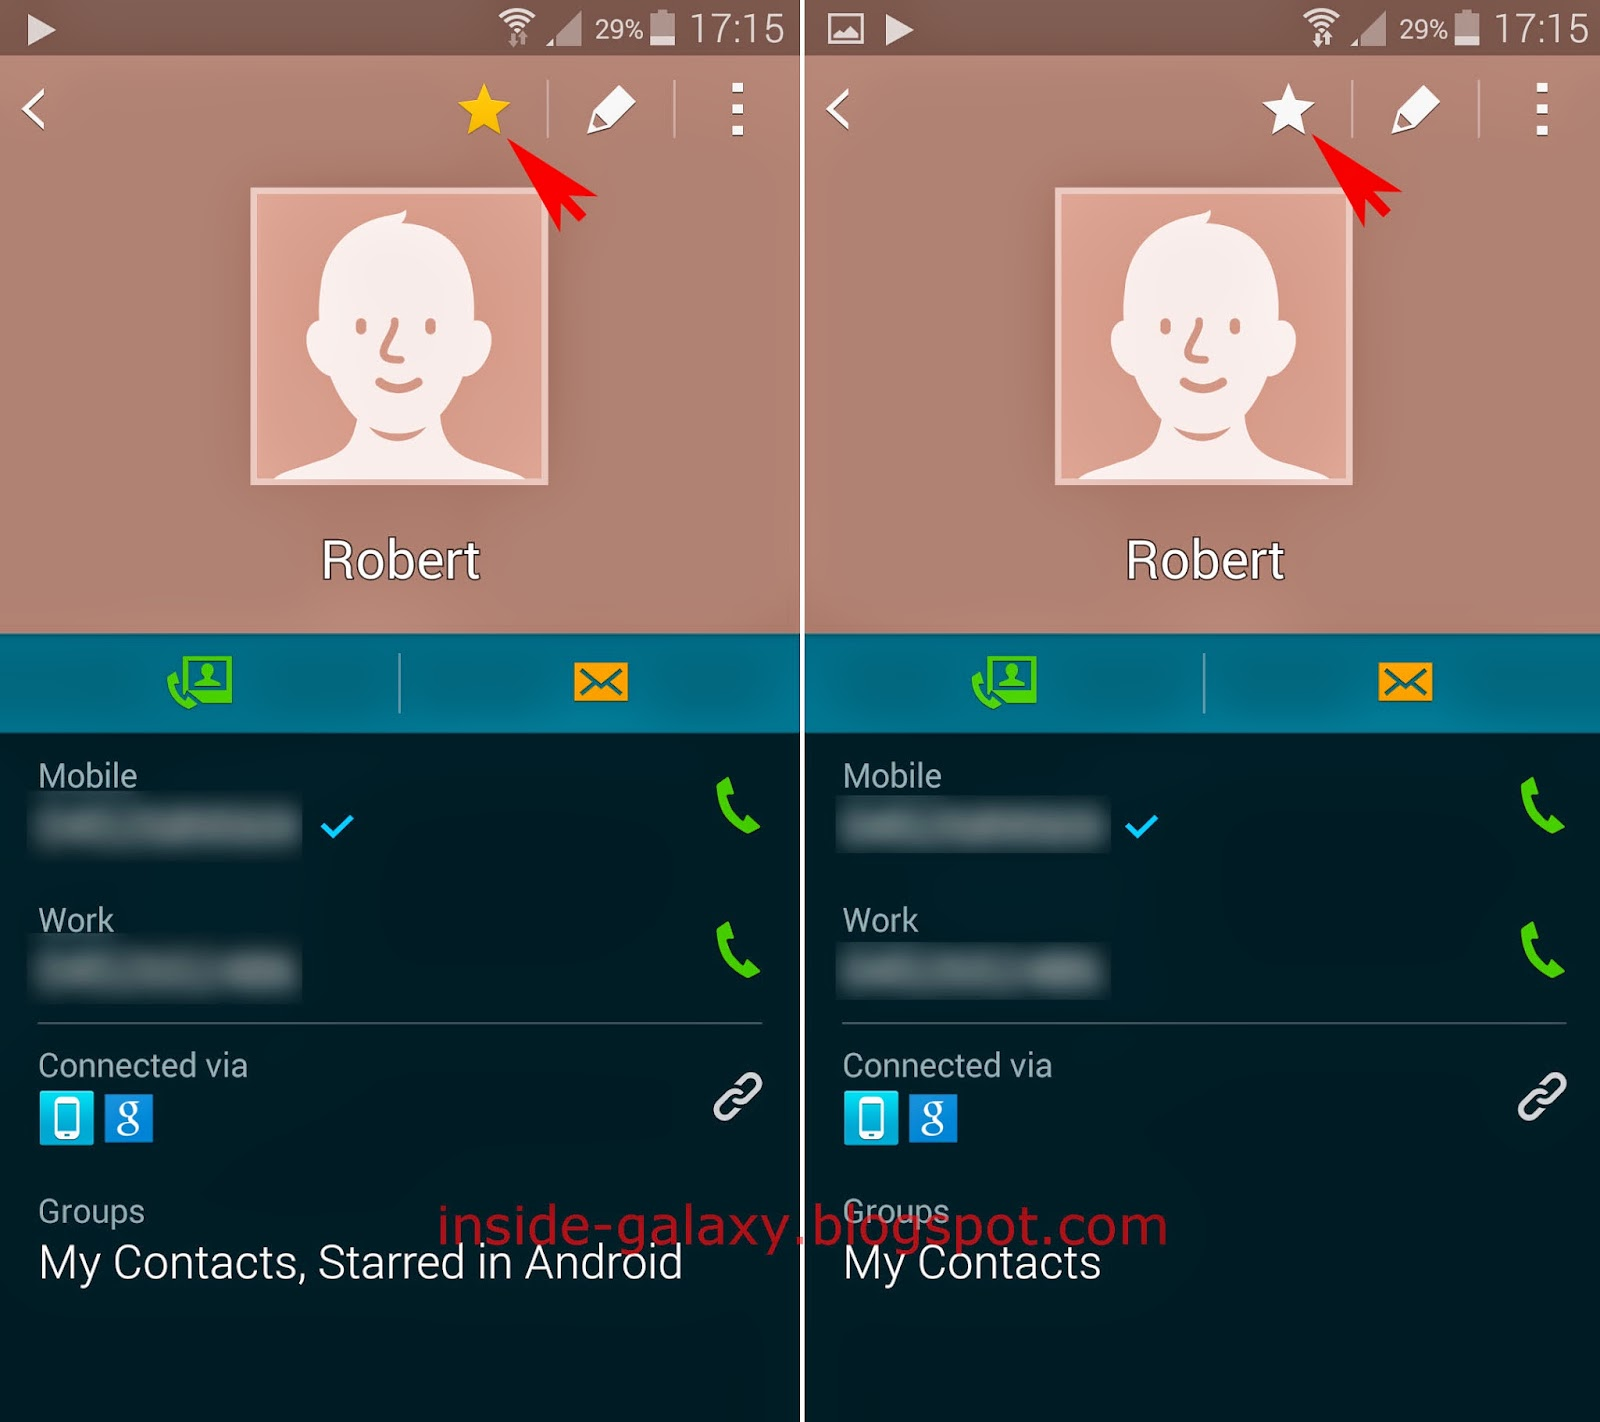 Phone How To Delete Contacts From An Android Phone inside galaxy samsung s5 how to remove contacts from fyi your phone will add the favourite icon or yellow star at photo contact help you easily know that contact